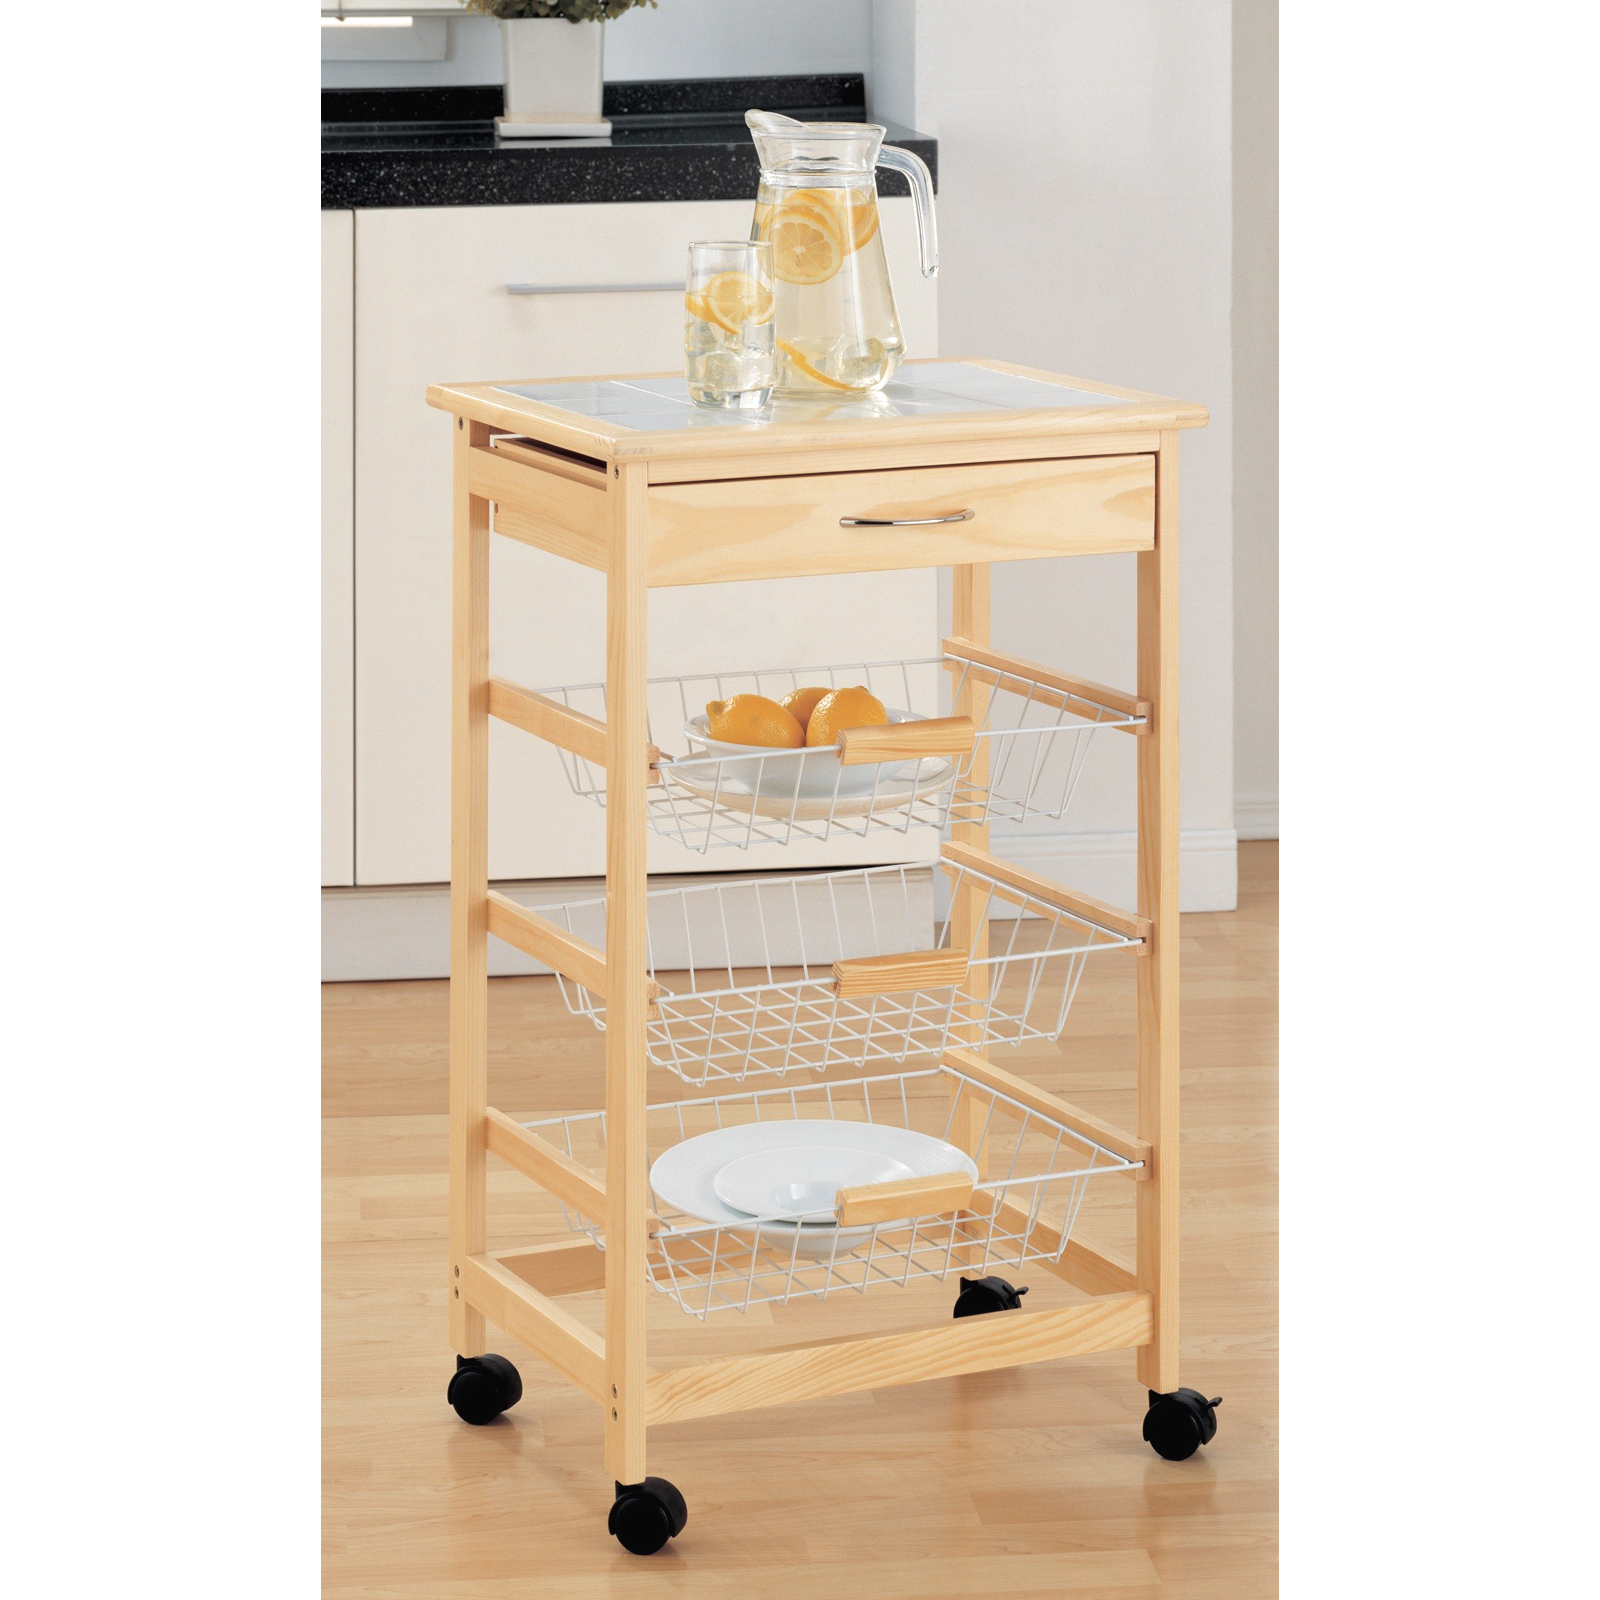 Wooden Kitchen Cart With Baskets By Neu Home In Kitchen Island Carts